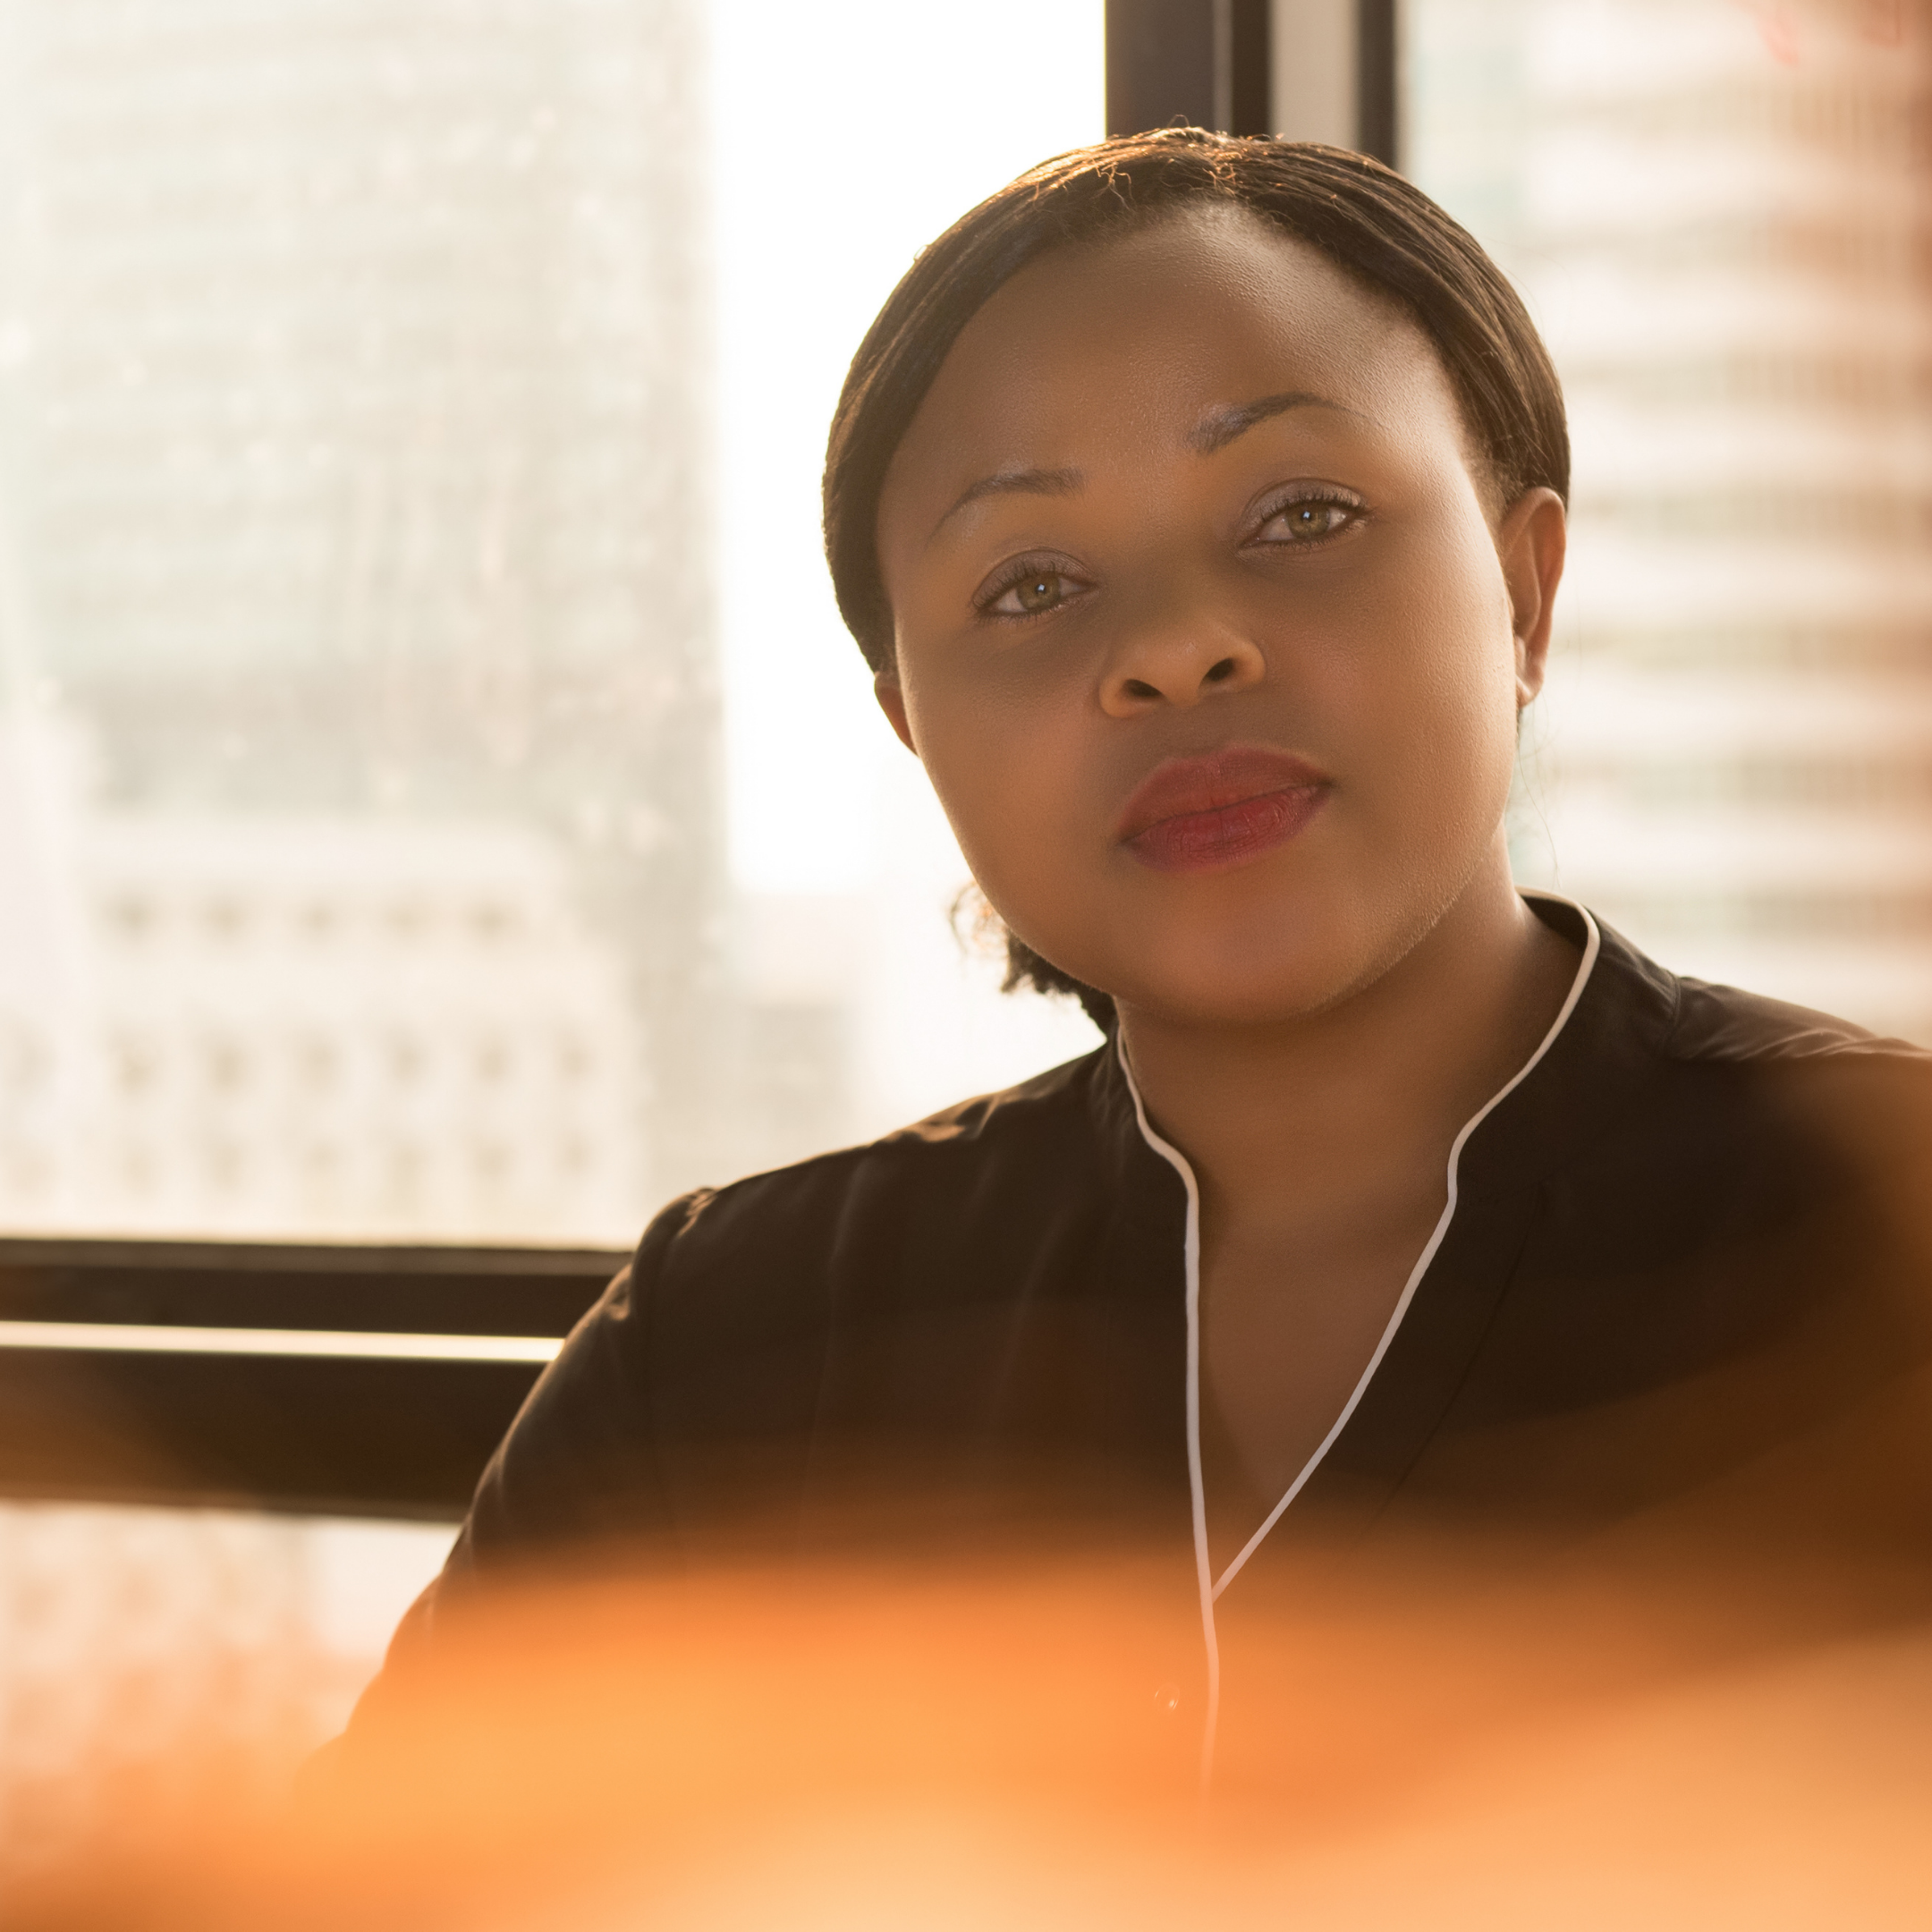 A beautiful black professional looking woman seemingly at work in a conference room.